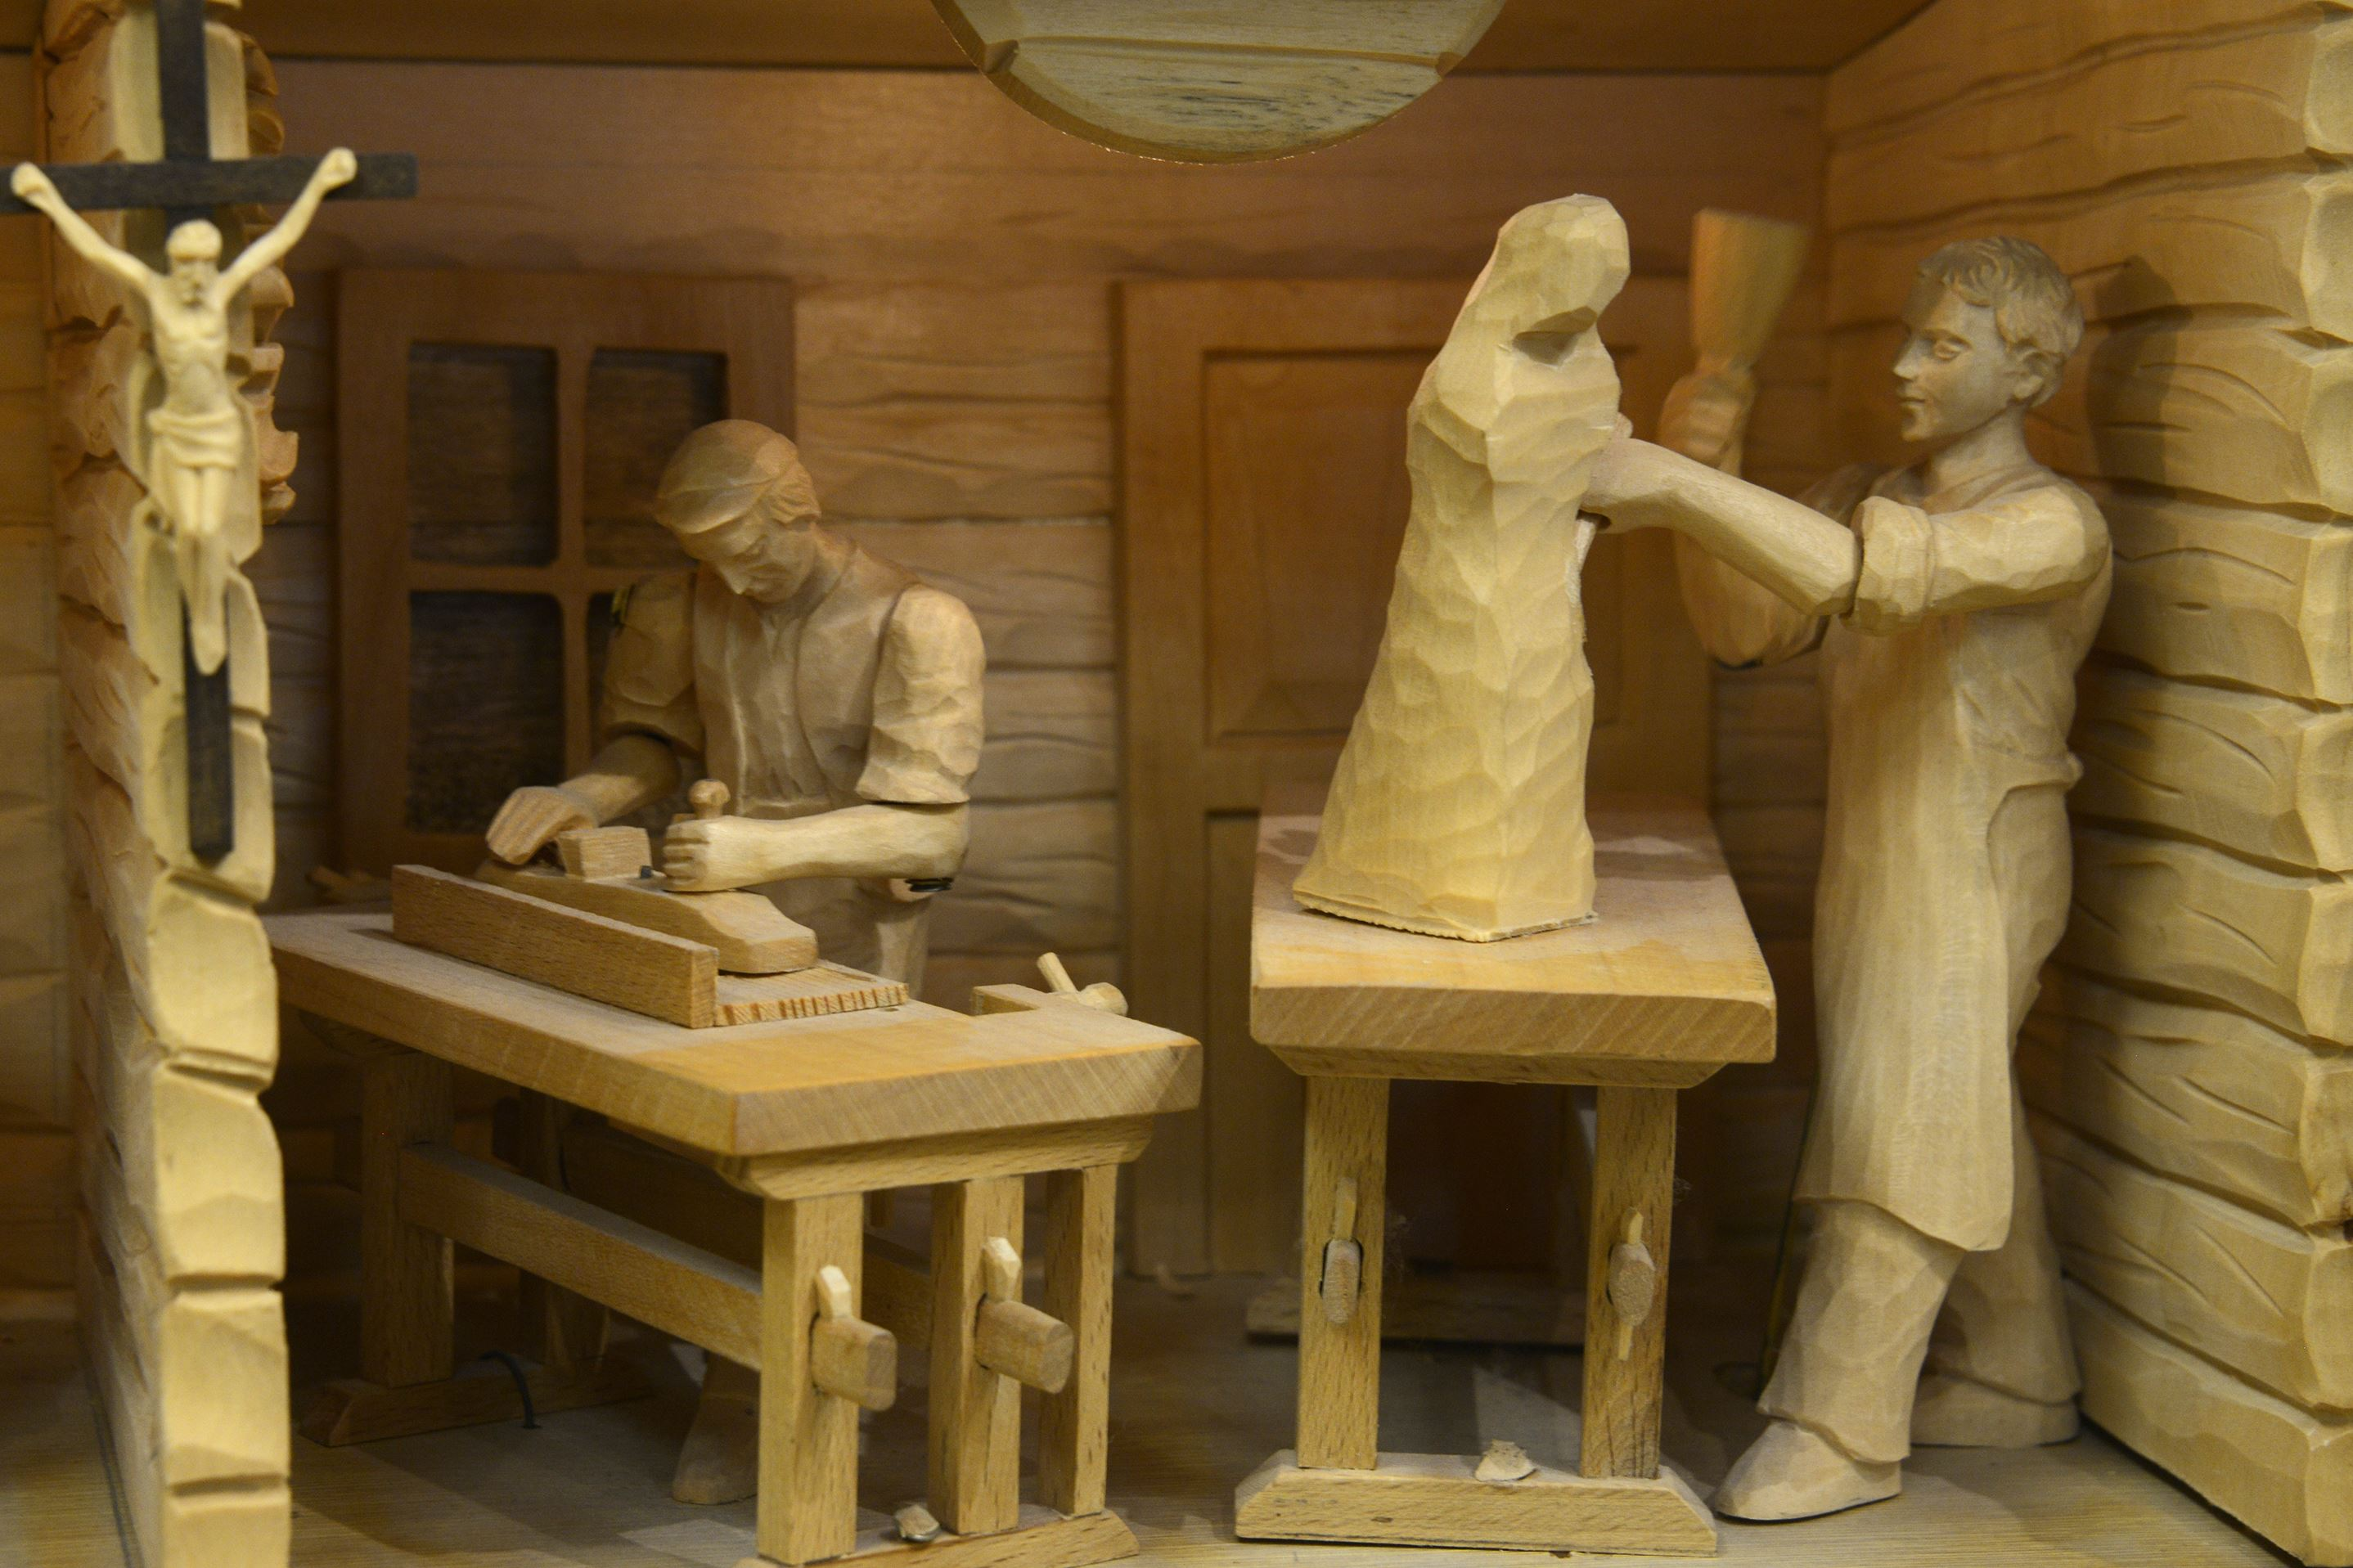 ... woodcarving finds a new home in Peters   Pittsburgh Post-Gazette